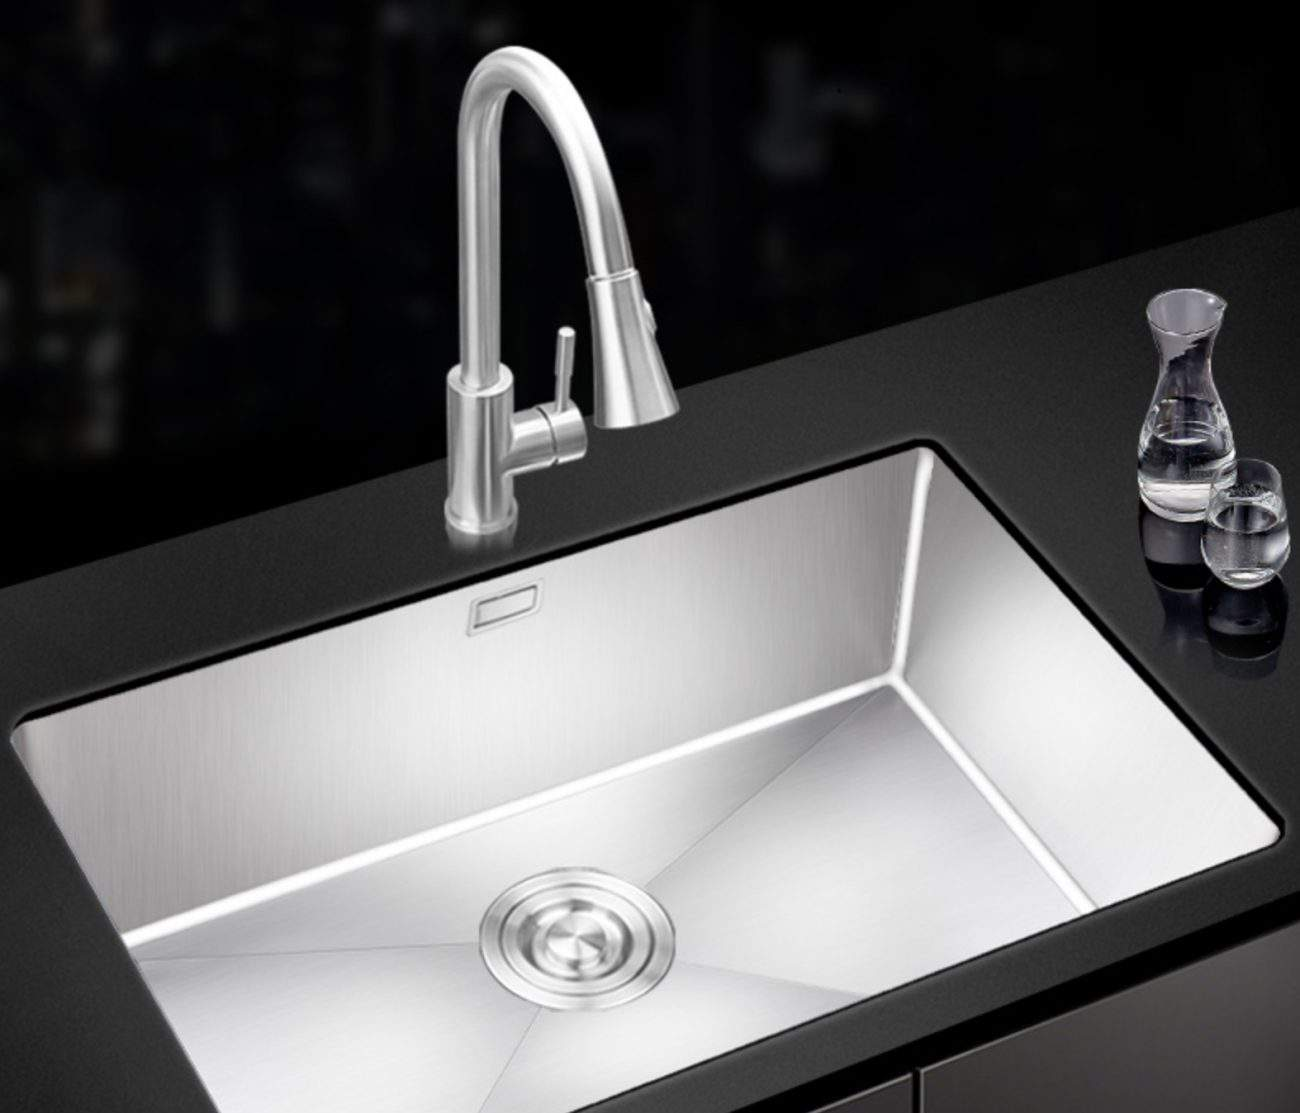 How to Choose the Best Single Basin Kitchen Sink